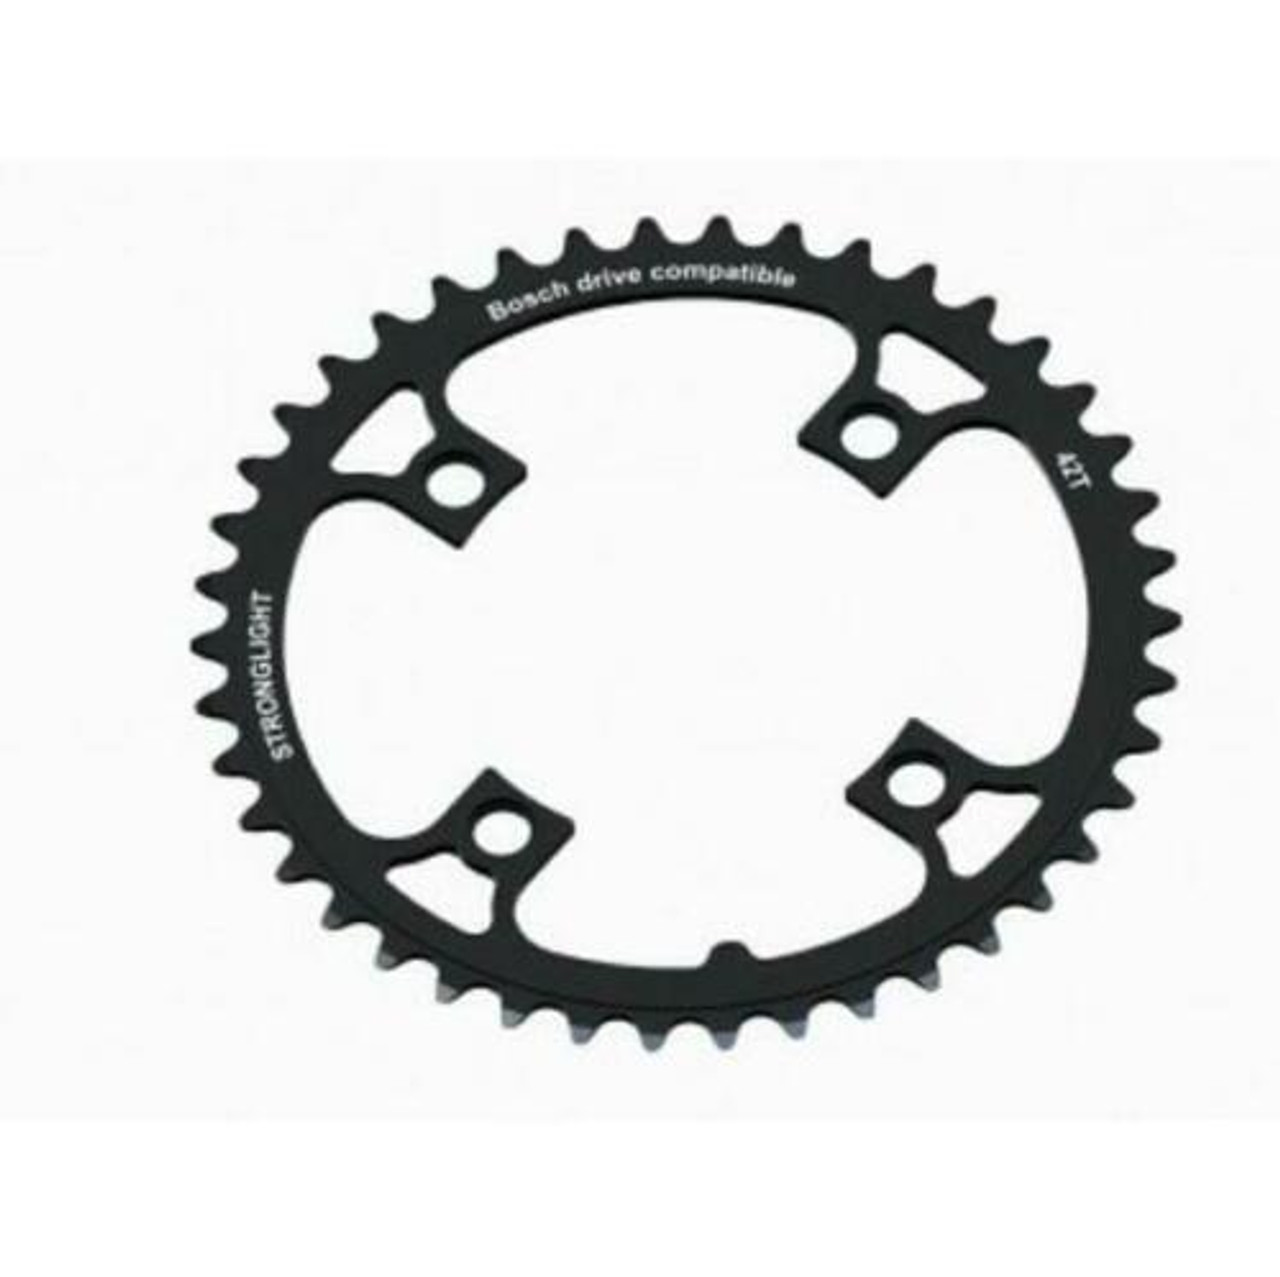 Stronglight 7075-T6 E Bike 104mm BCD Bosch Compatible Chainring In Black